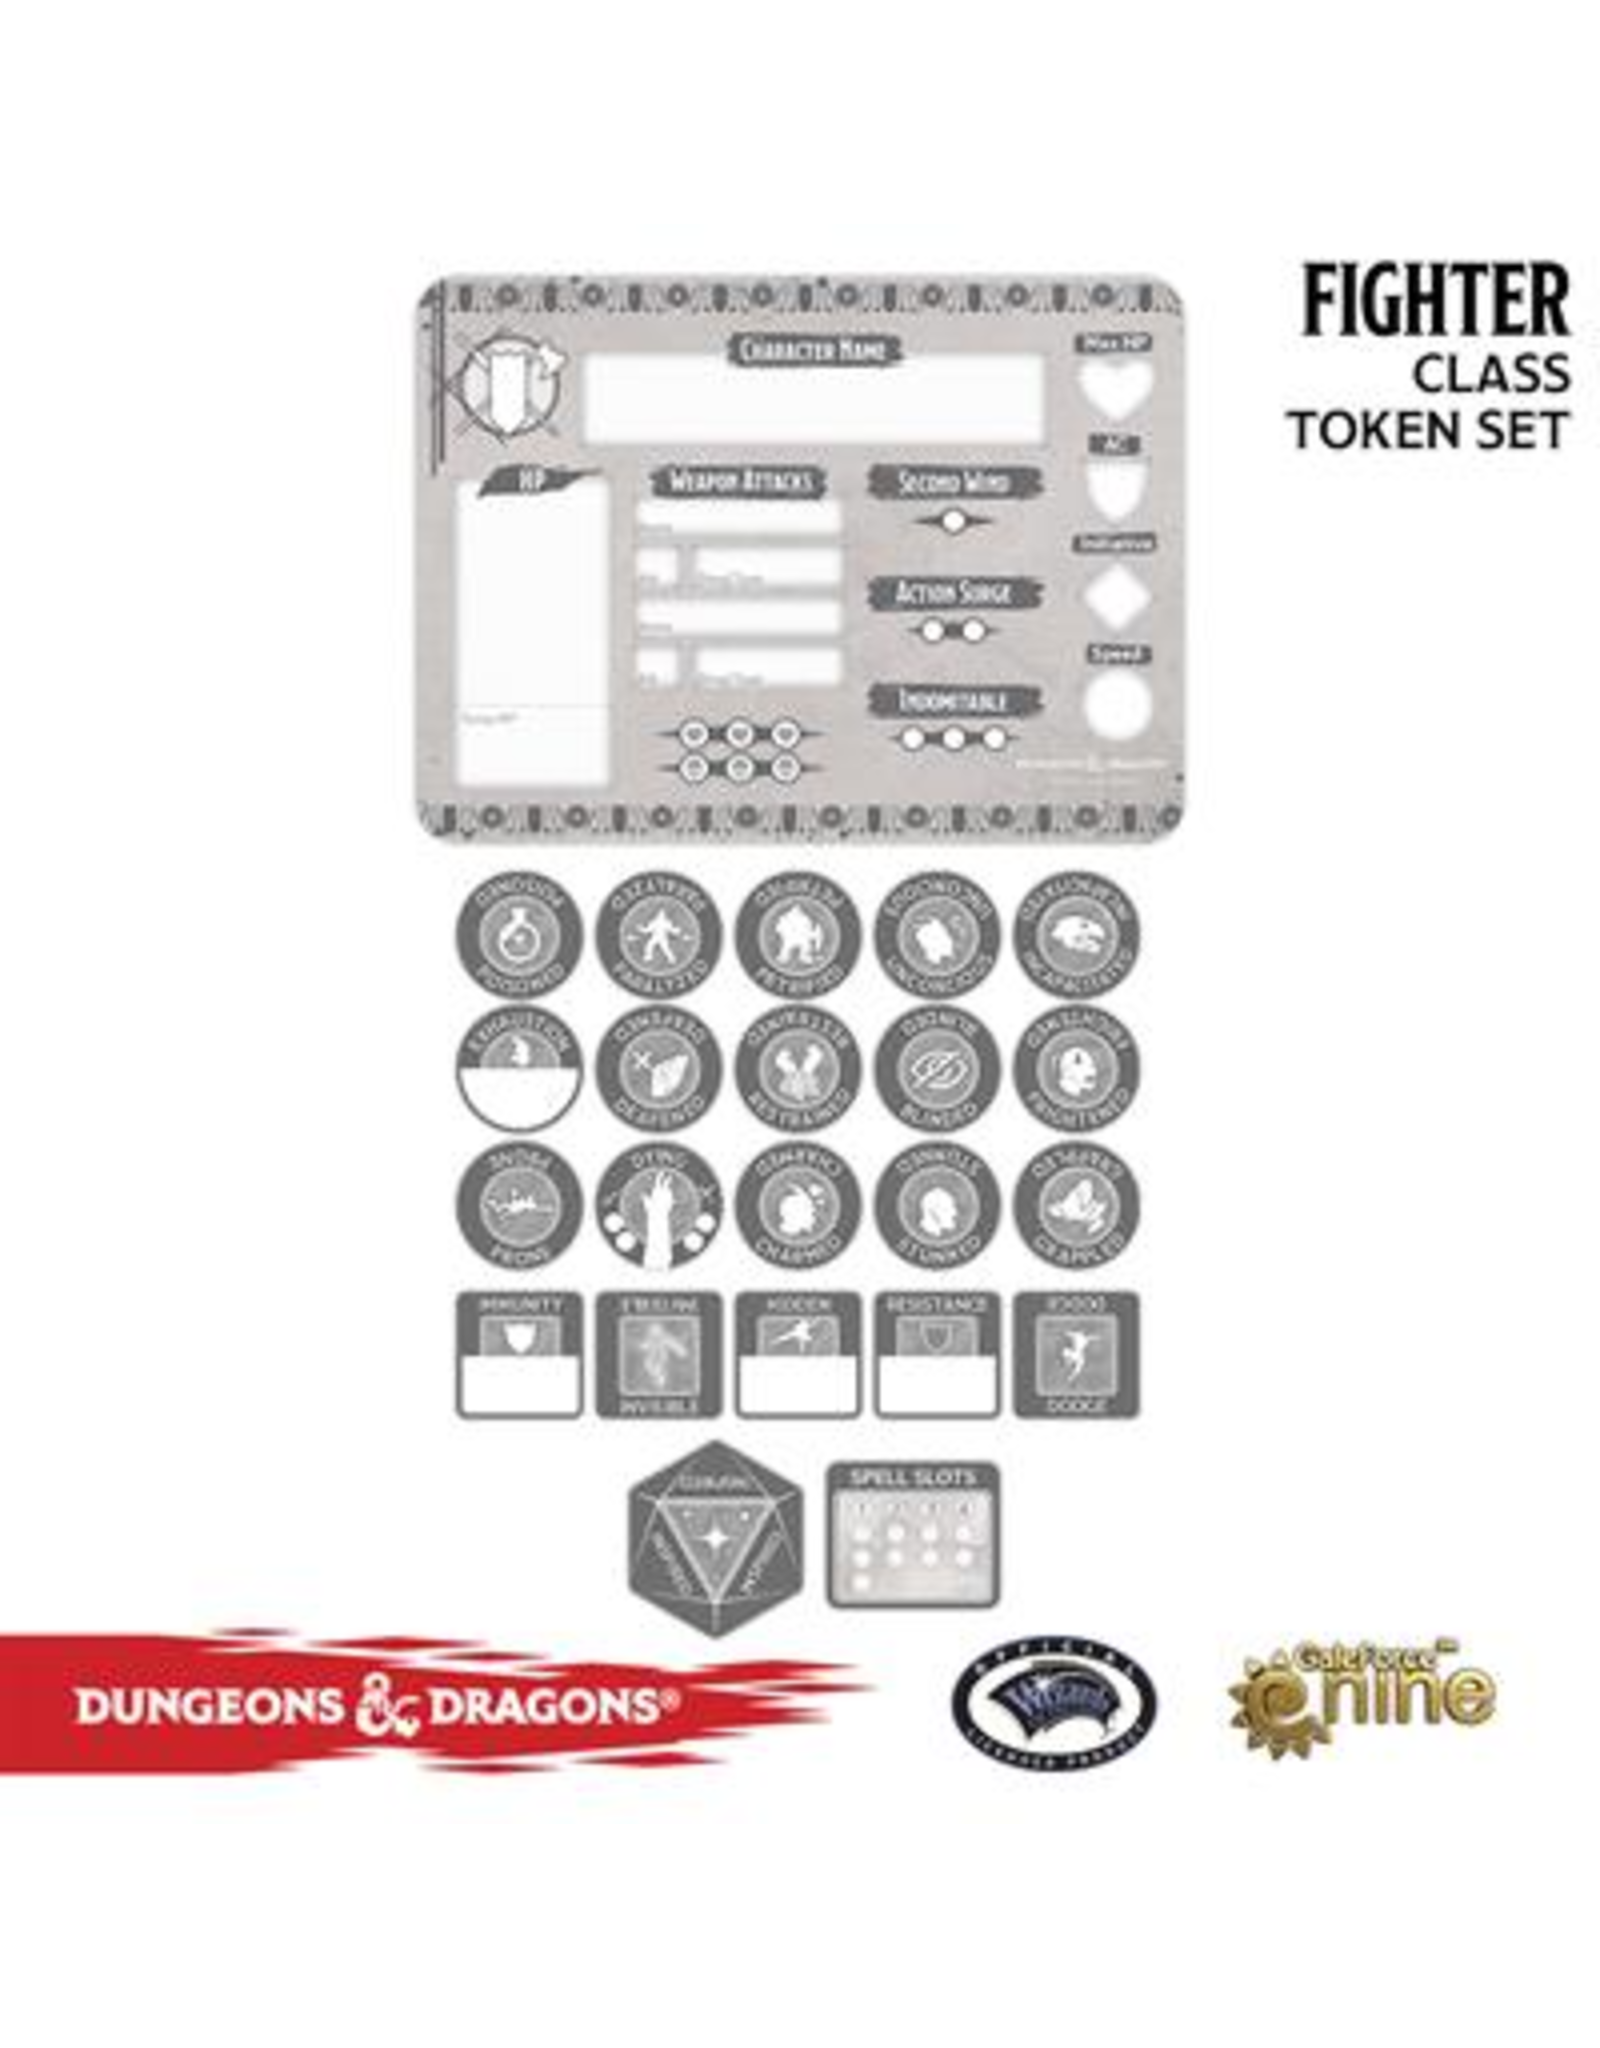 Gale Force Nine Dungeons & Dragons 5th Edition Token Set & Player Board: Fighter